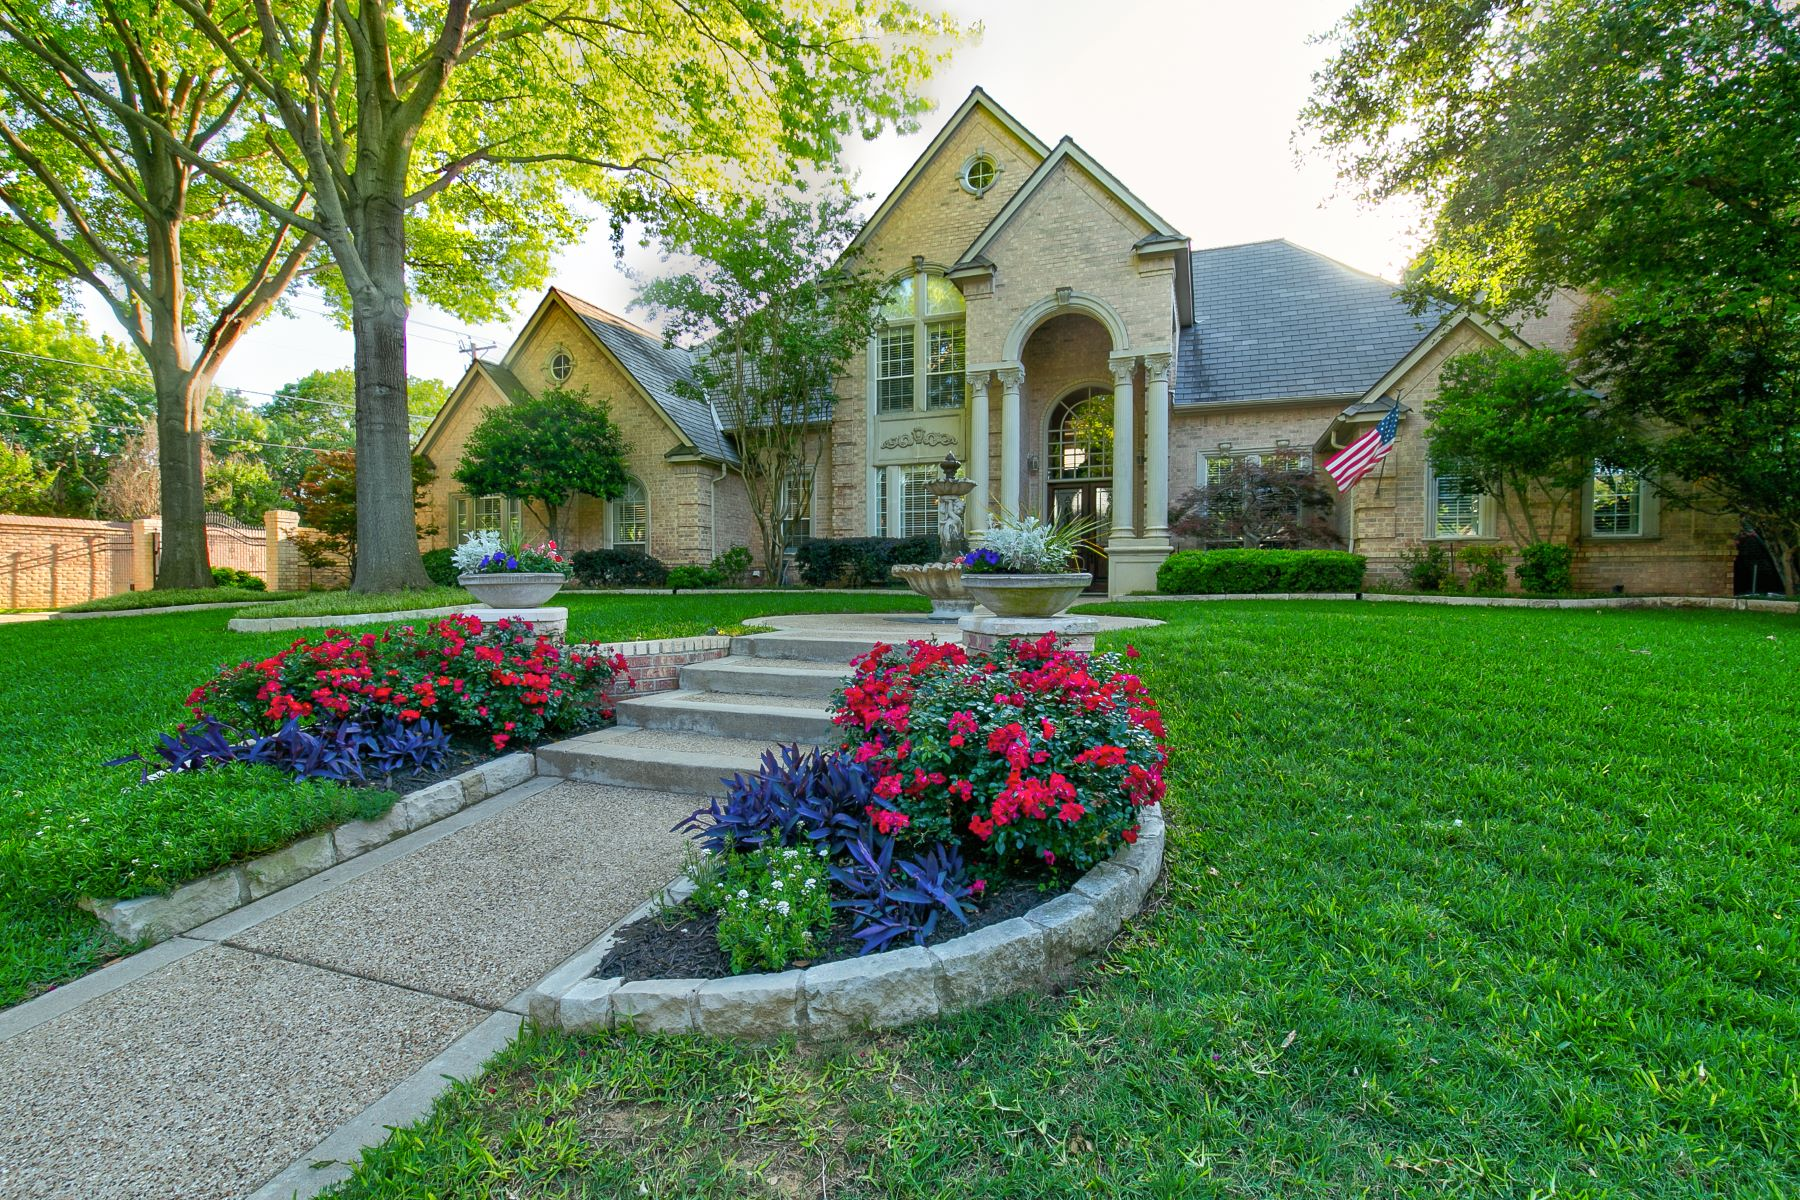 Single Family Homes for Sale at Beautifully Updated Colleyville Home 5000 Westgrove Lane Colleyville, Texas 76034 United States